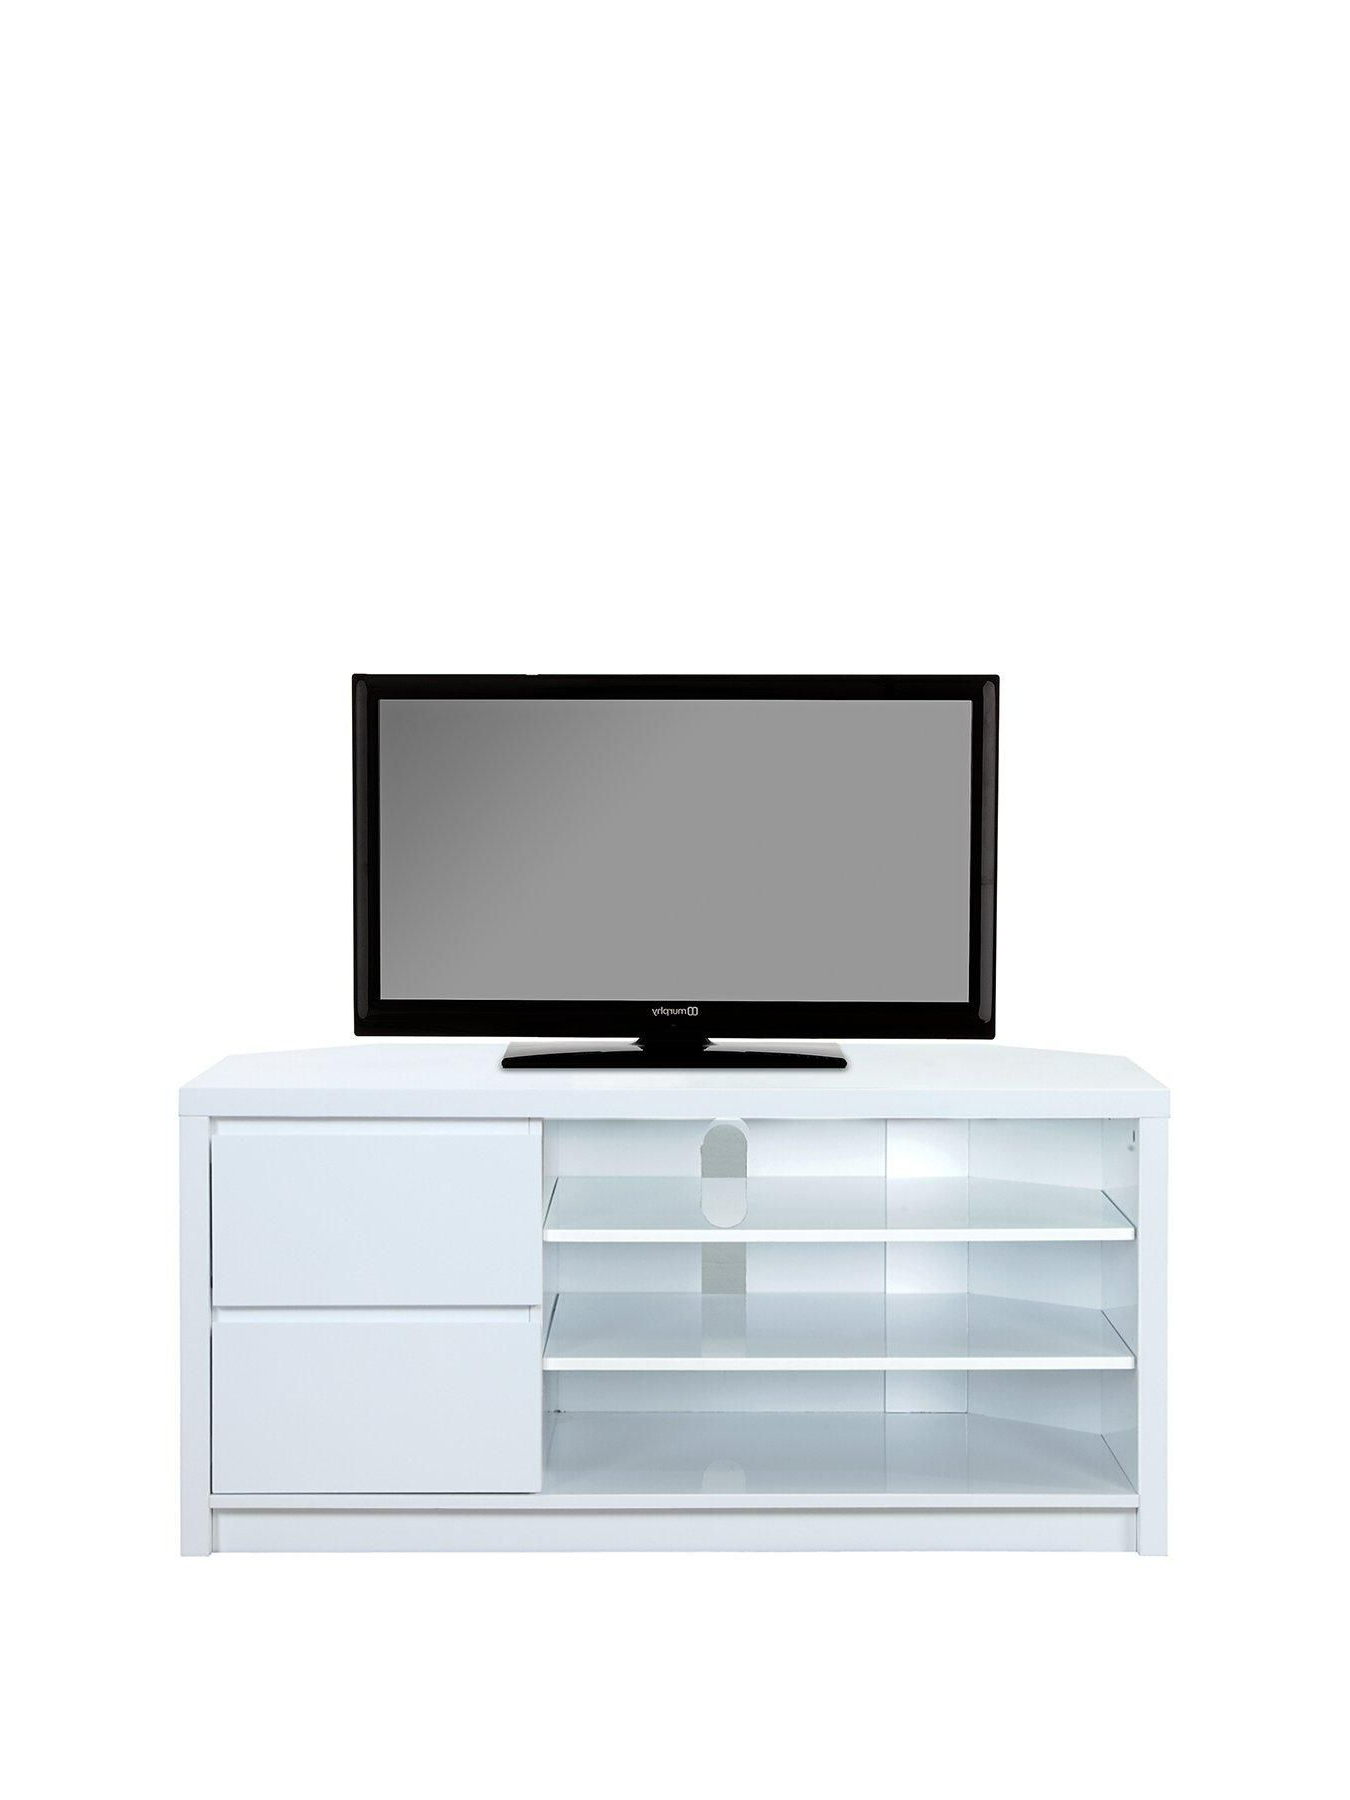 Black High Gloss Corner Tv Unit Within Trendy Echo Tall High Gloss Corner Tv Unit – Fits Up To 65 Inch Tv (View 2 of 20)